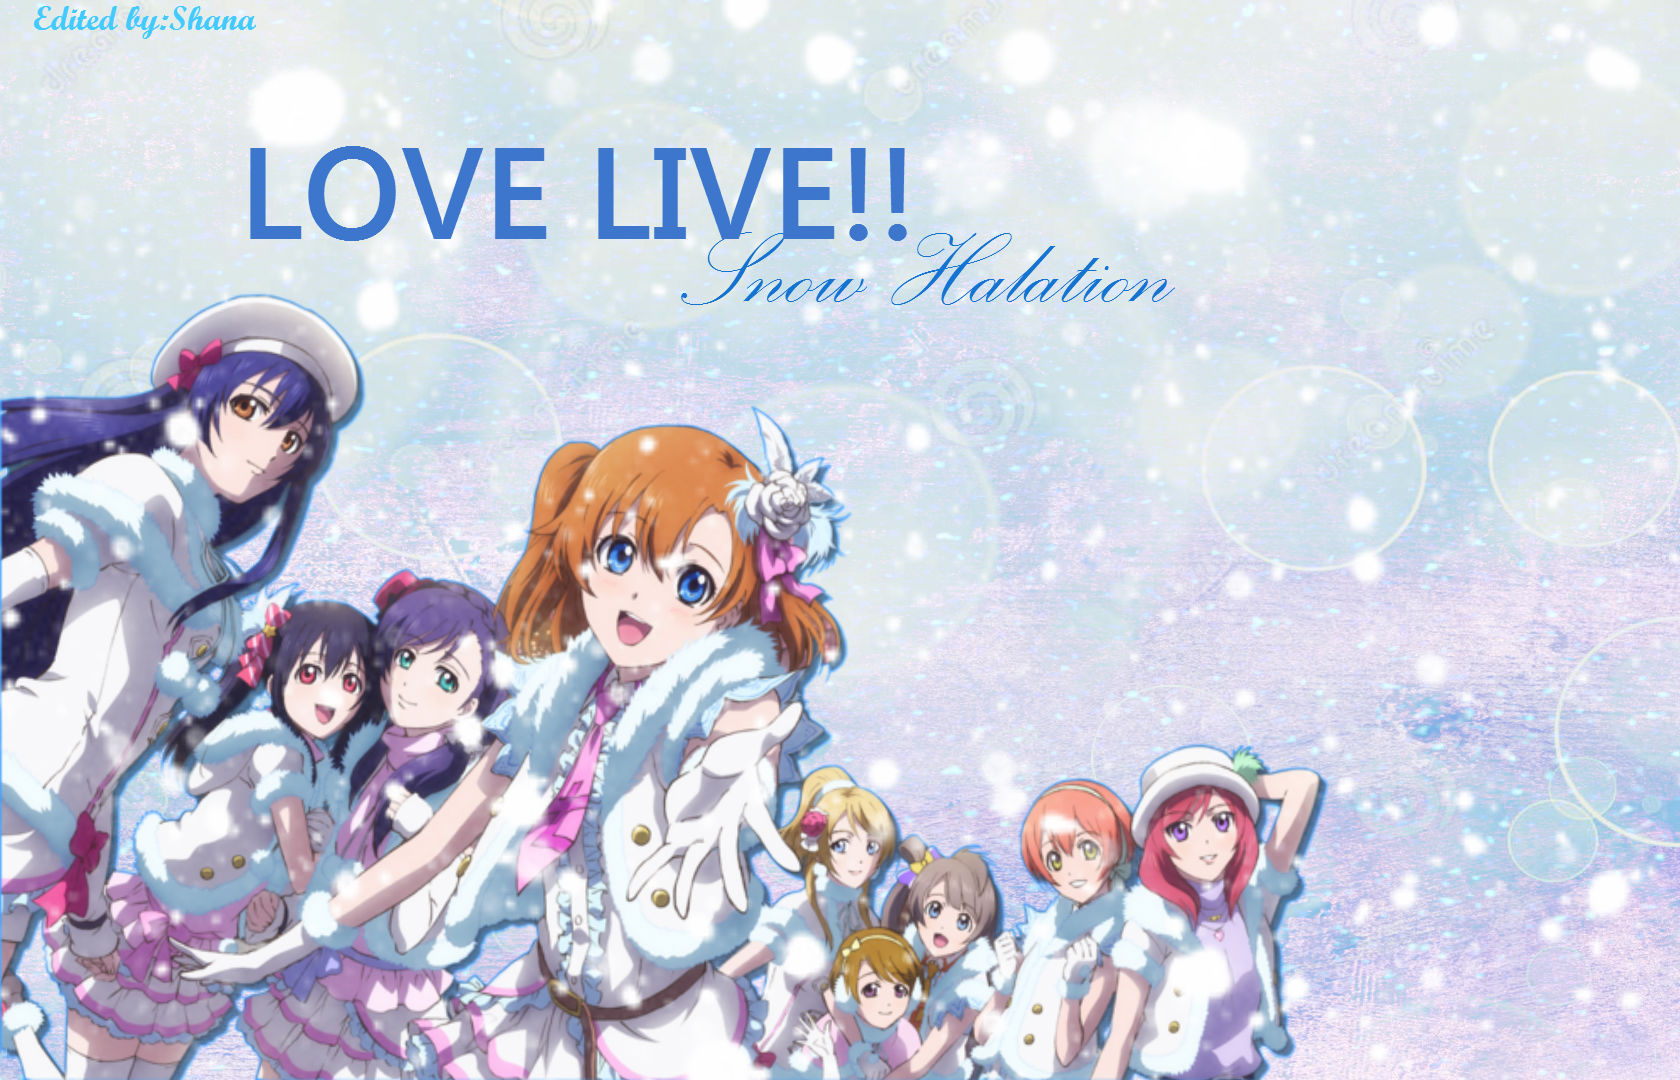 Snow Love Wallpaper For Mobile : Love Live Snow Halation Wallpaper by LillyDah on DeviantArt